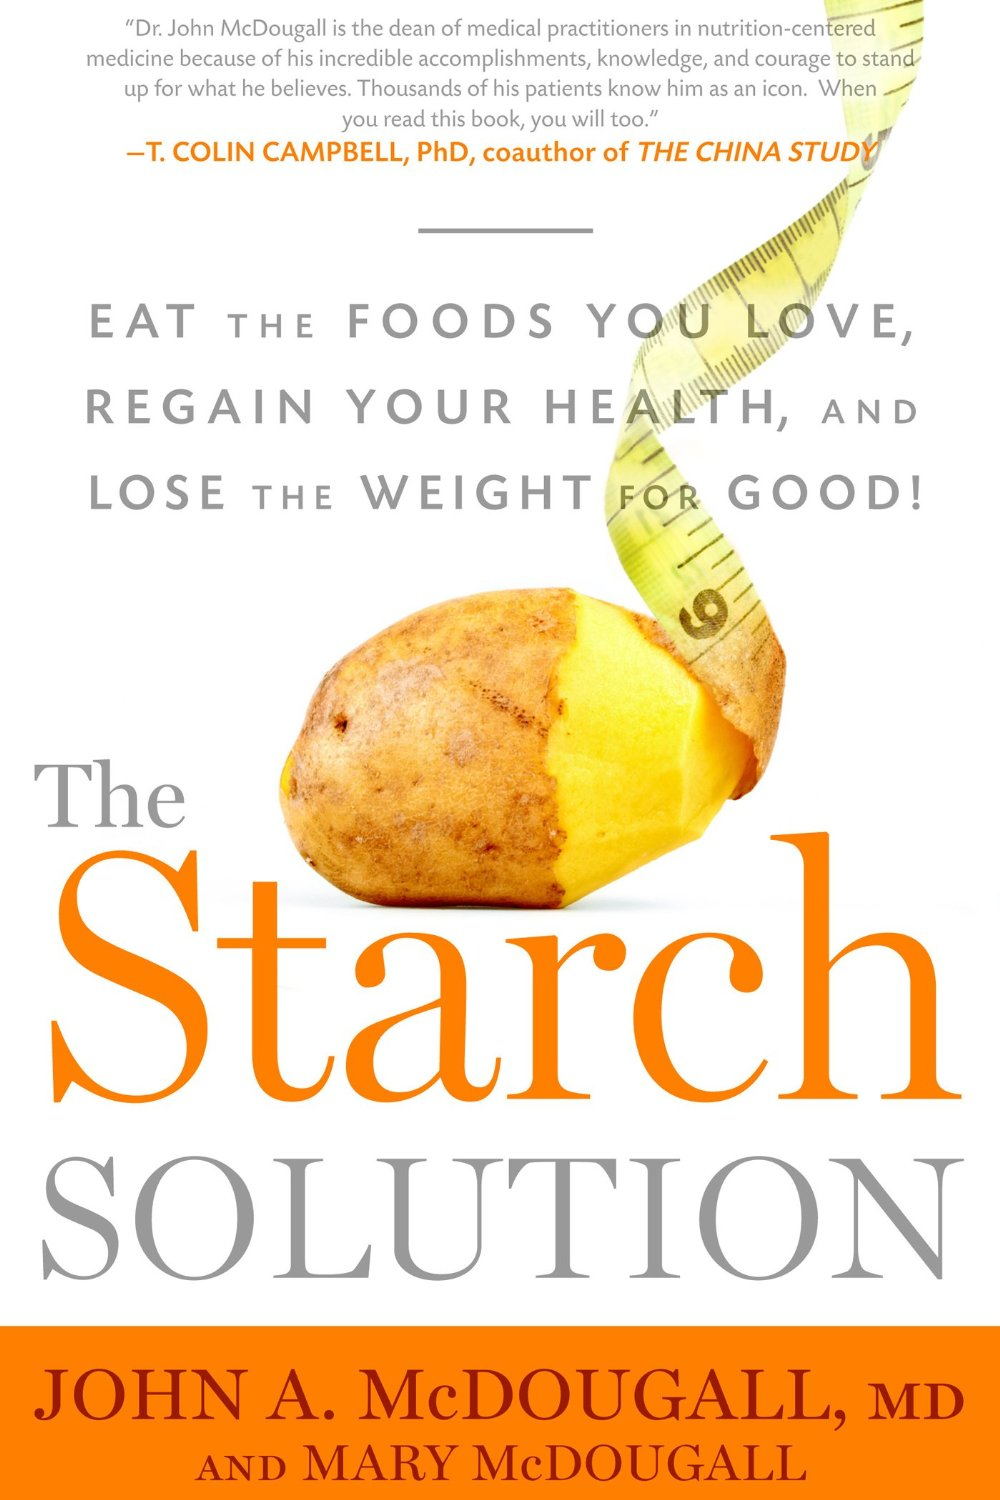 The Starch Solution, John McDougall